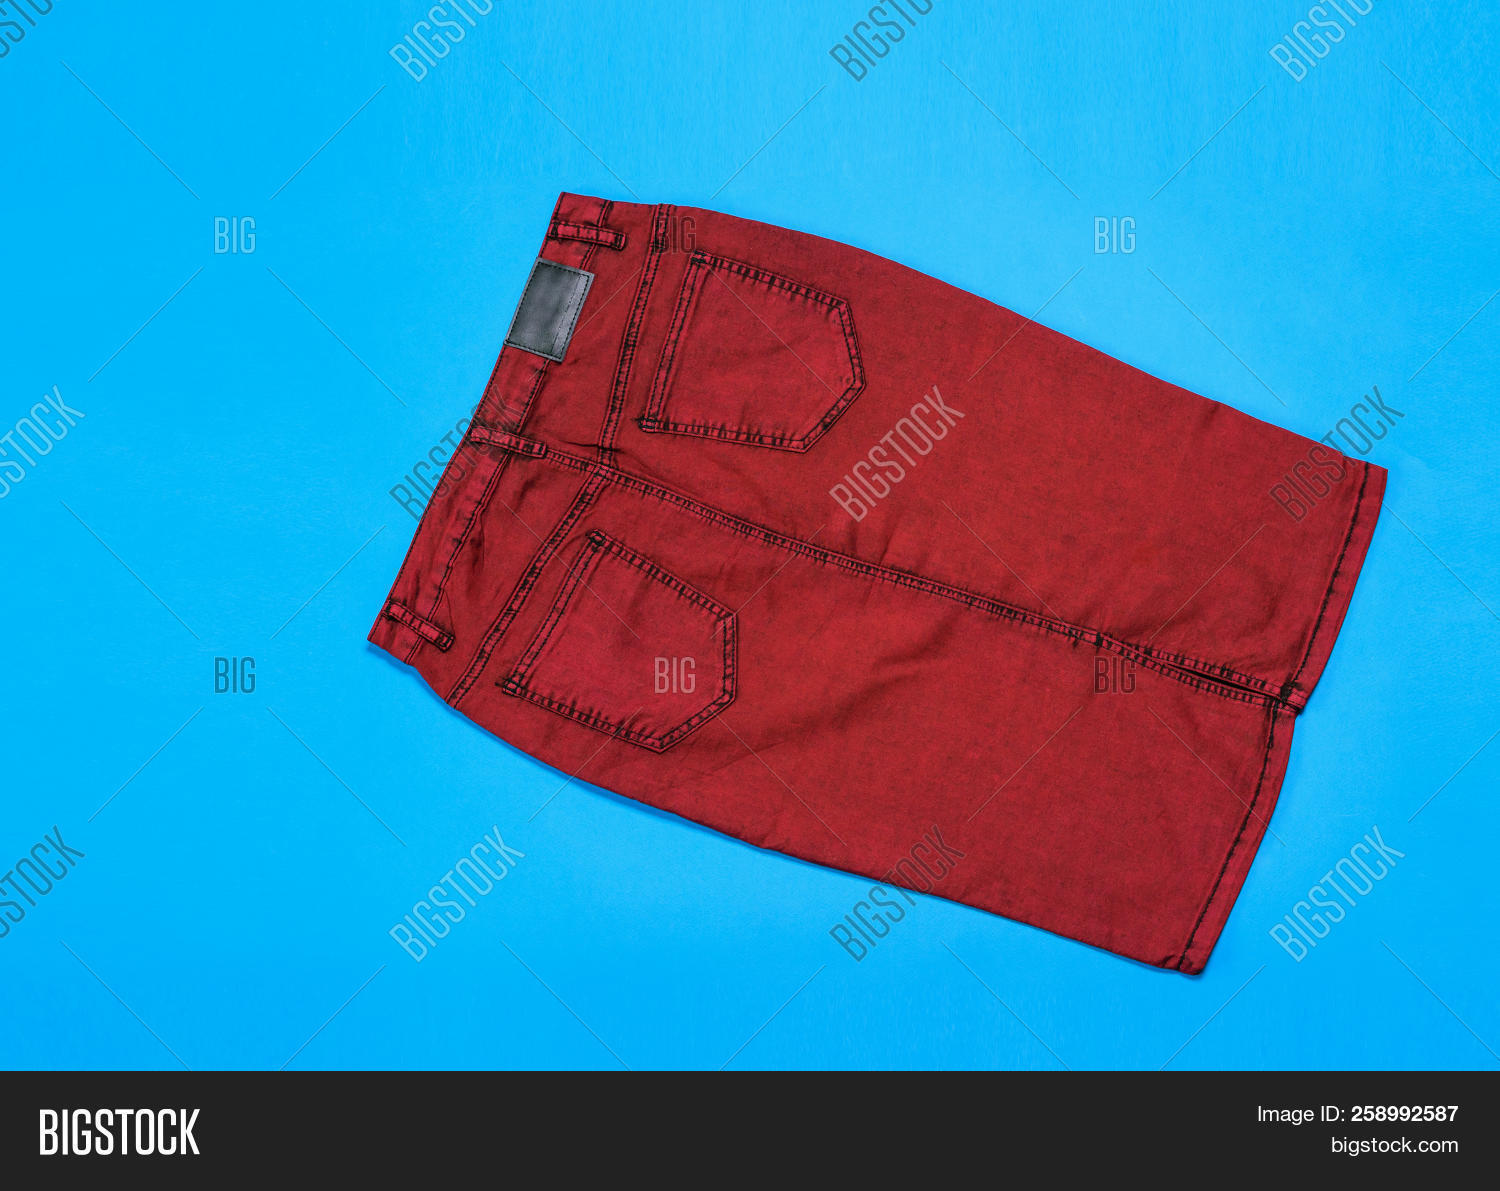 c39e5a0fc Burgundy denim skirt on blue background. Fashionable denim women's  clothing. Denim women's clothing on colored background.